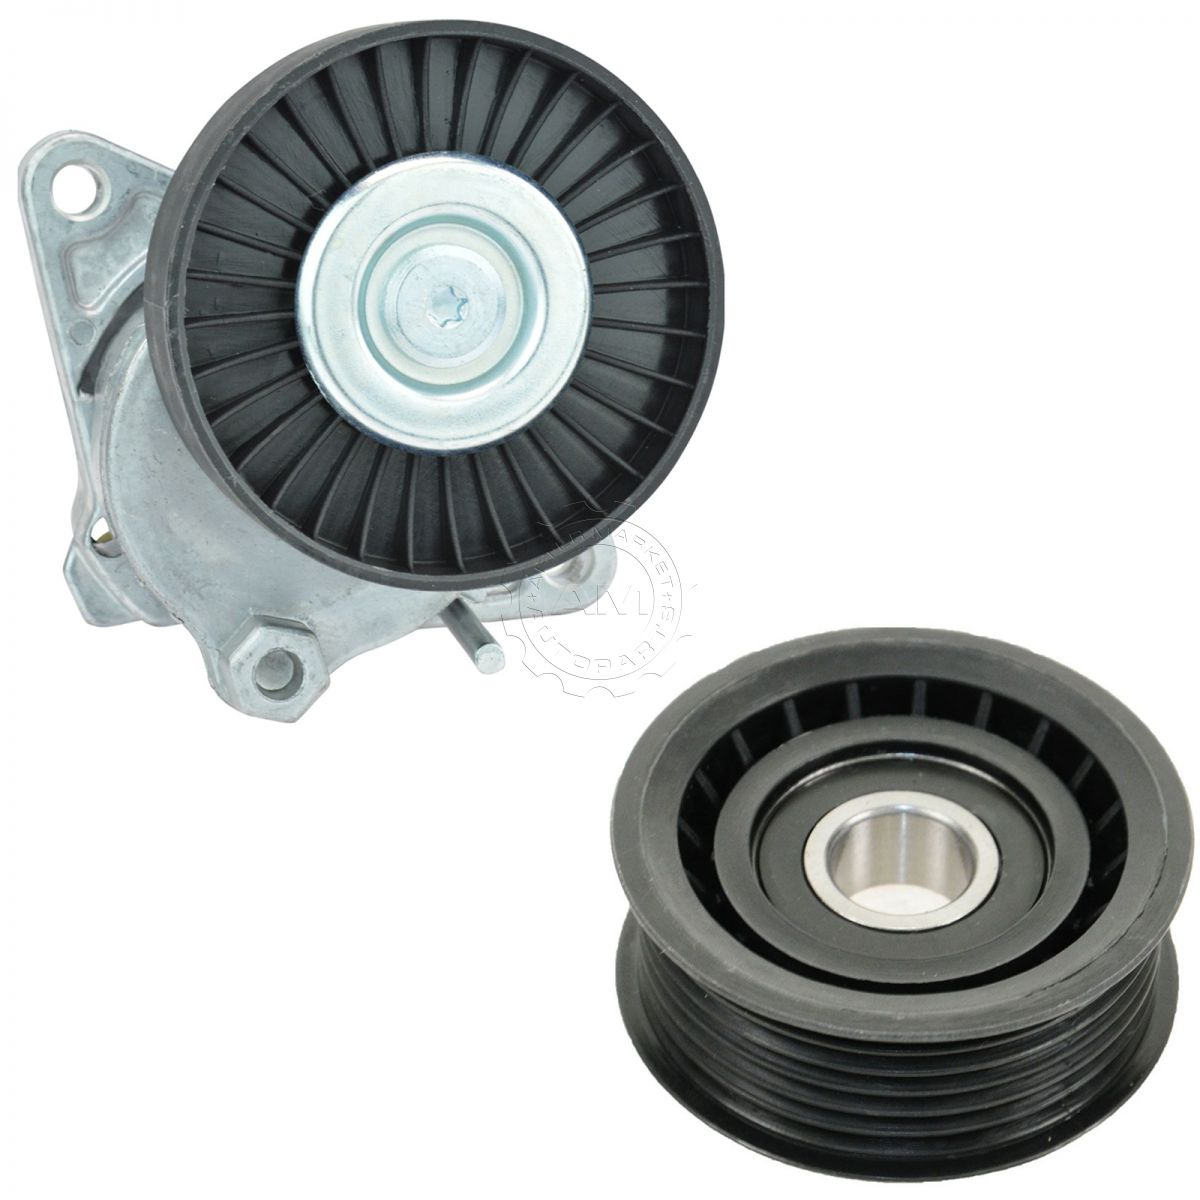 Serpentine Belt Tensioner  U0026 Idler Pulley Kit For Chrysler